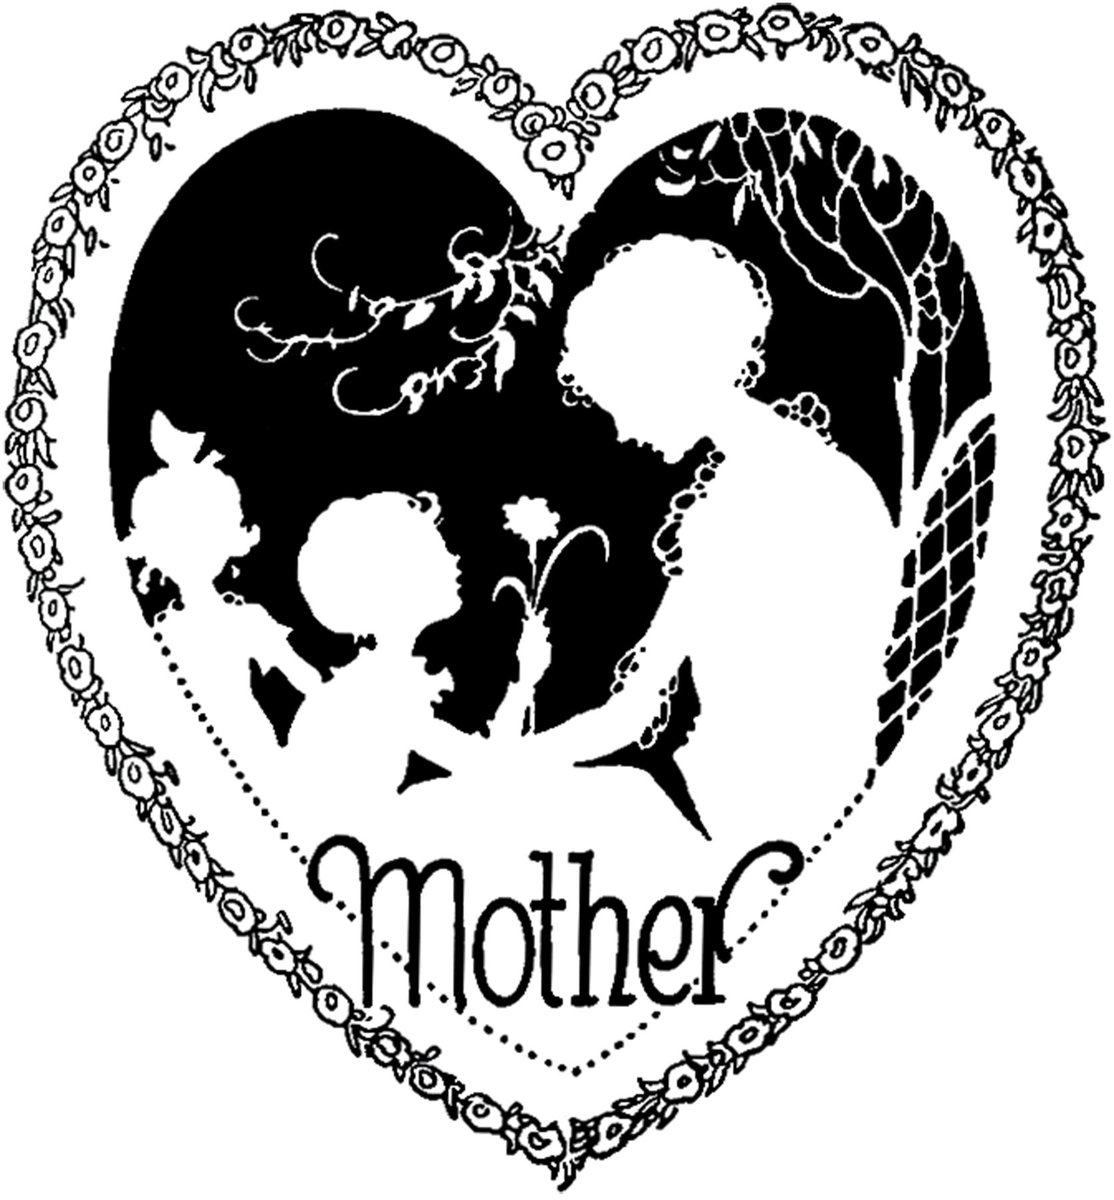 """Join 7 people right now at """"12+ Free Vintage Mother's Day Images! - The Graphics Fairy"""" #cheers #crafts #entertainment #thegraphicsfairy #graphics #mothers #vintage #mother #images #fairy #free http://cheers.ws/Z2n4B2?utm_source=dlvr.it&utm_medium=twitter…"""